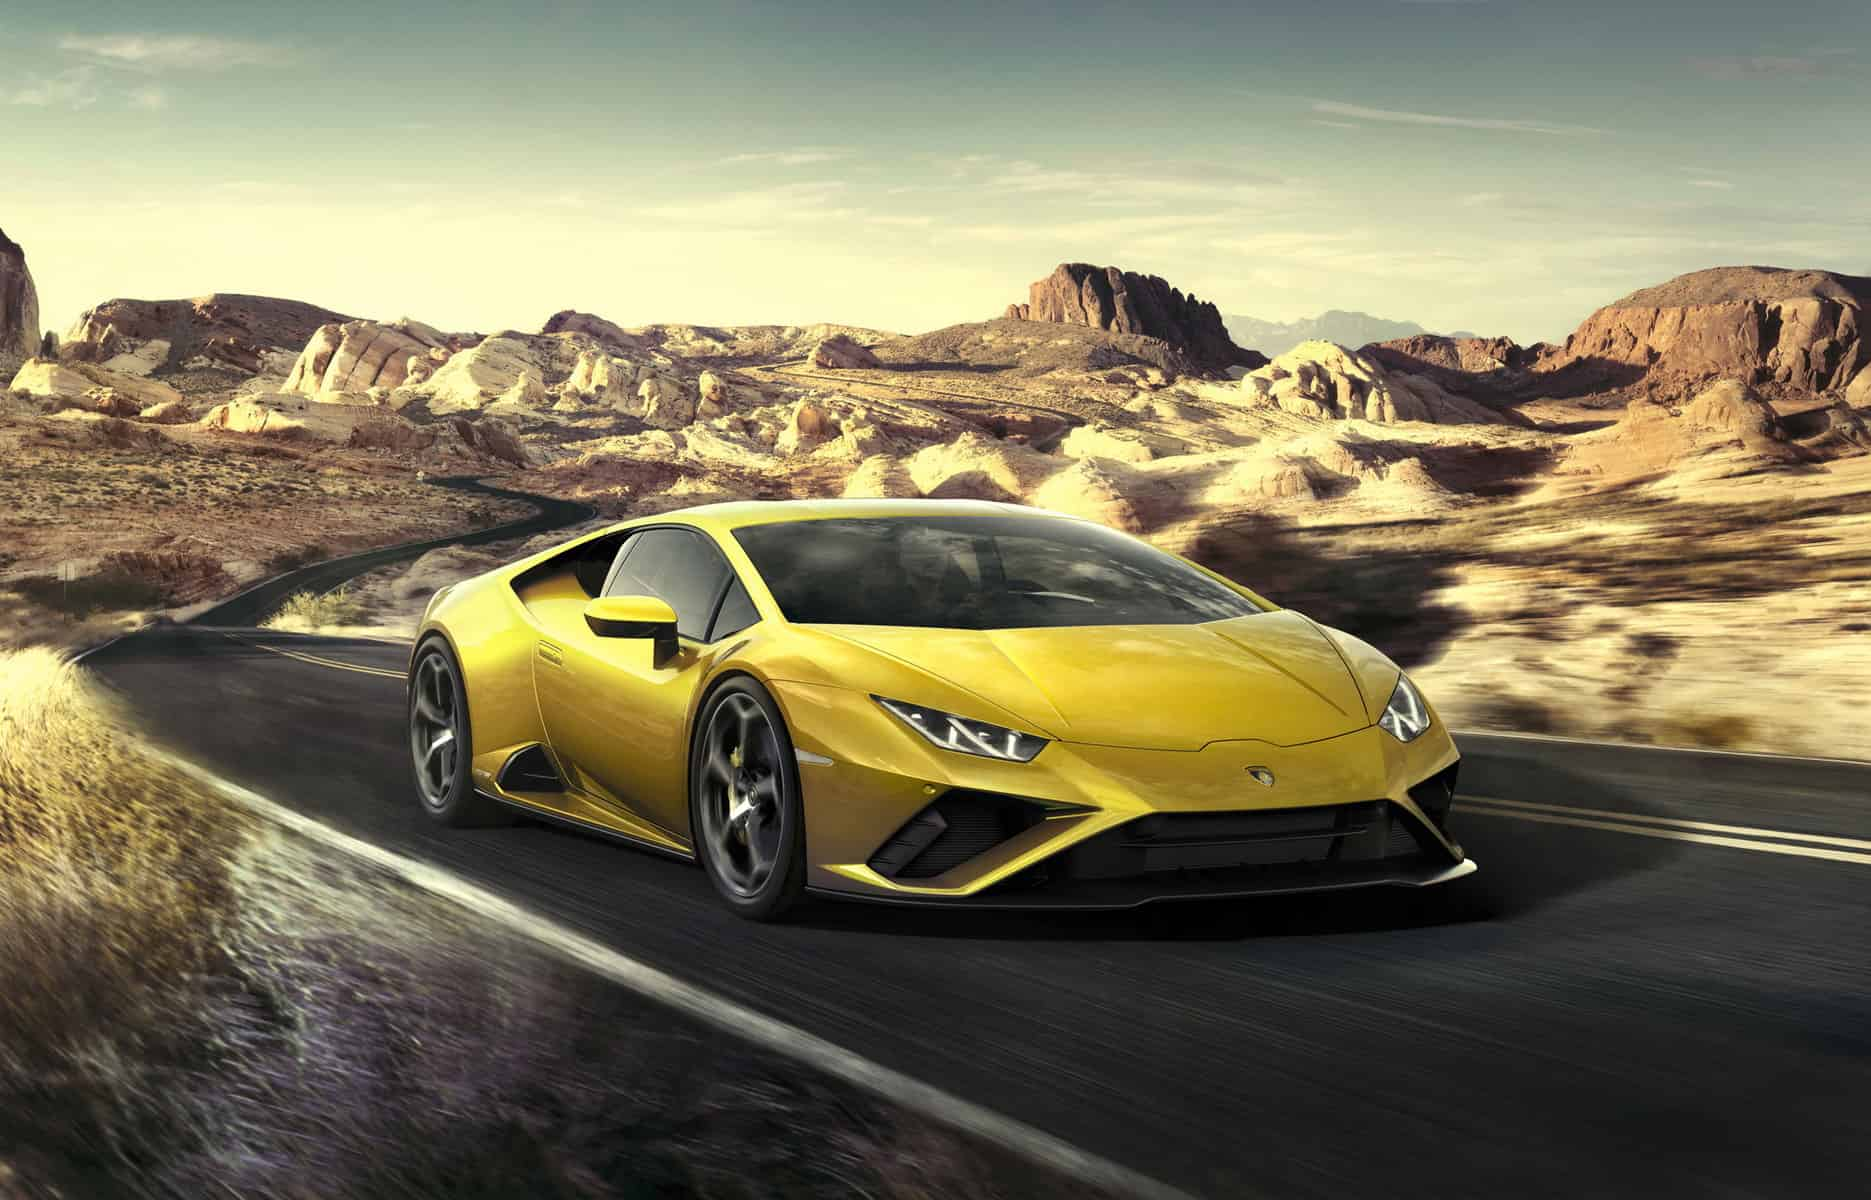 Less is More: The Lamborghini Huracan EVO Rear Wheel Drive